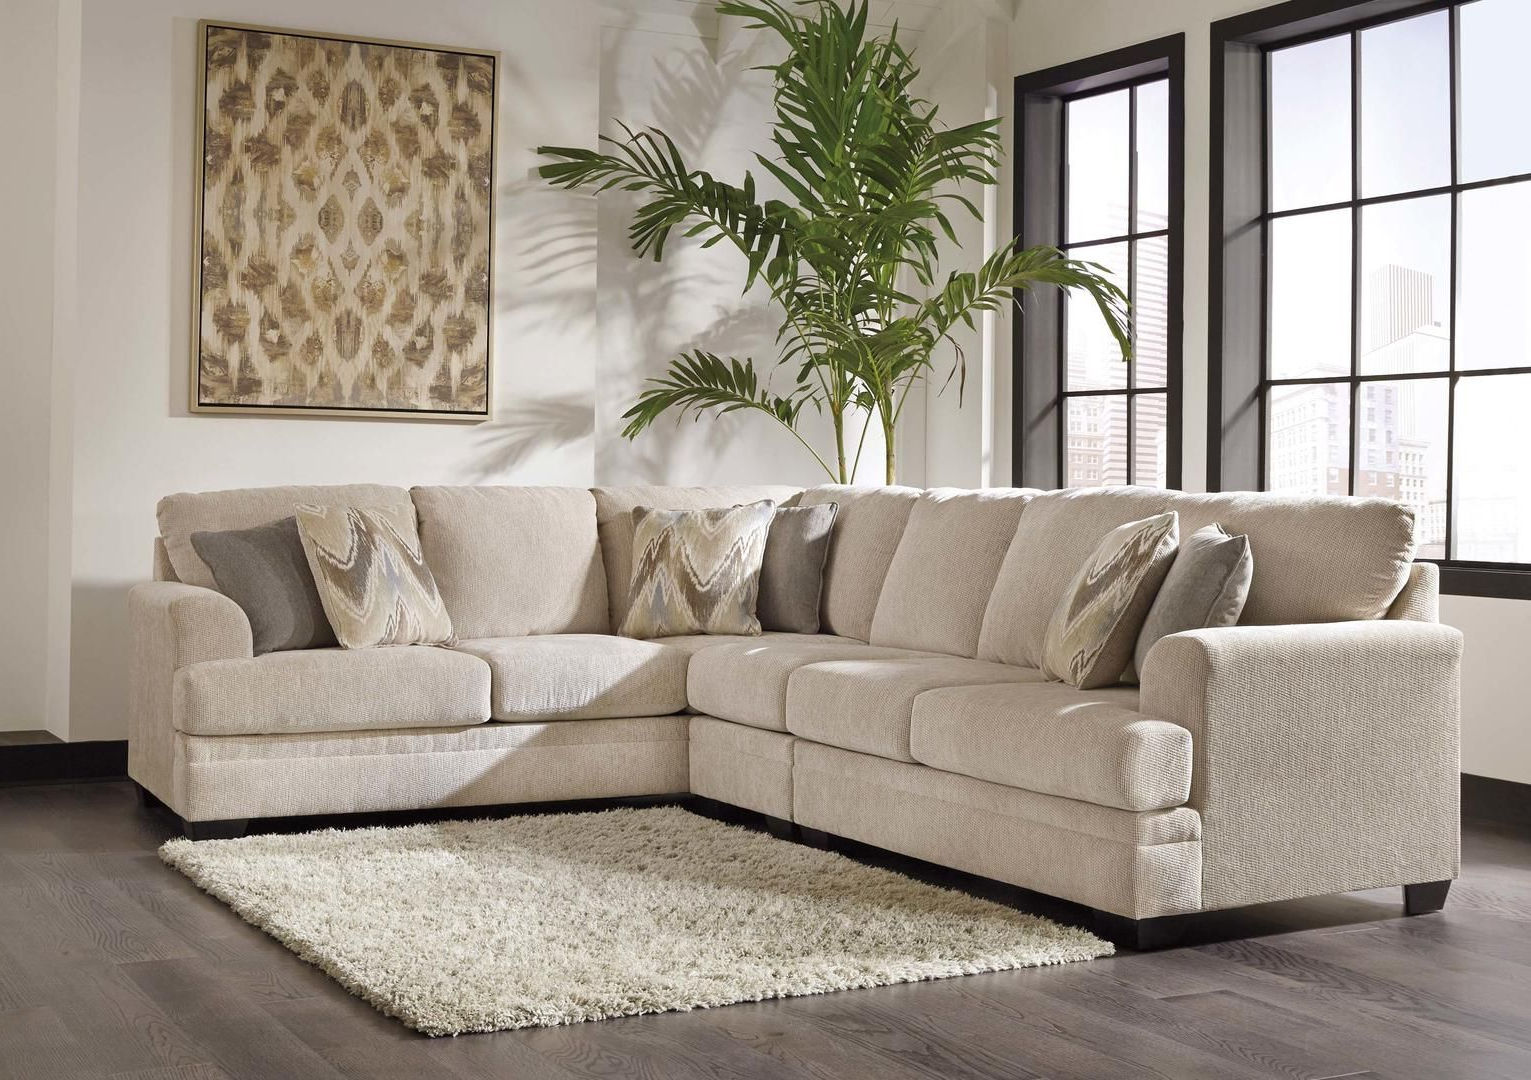 Malbry Point 3 Piece Sectionals With Laf Chaise With Regard To Popular Ameer 81806 55 46 67 3 Piece Fabric Sectional Sofa With Left Arm (View 14 of 20)